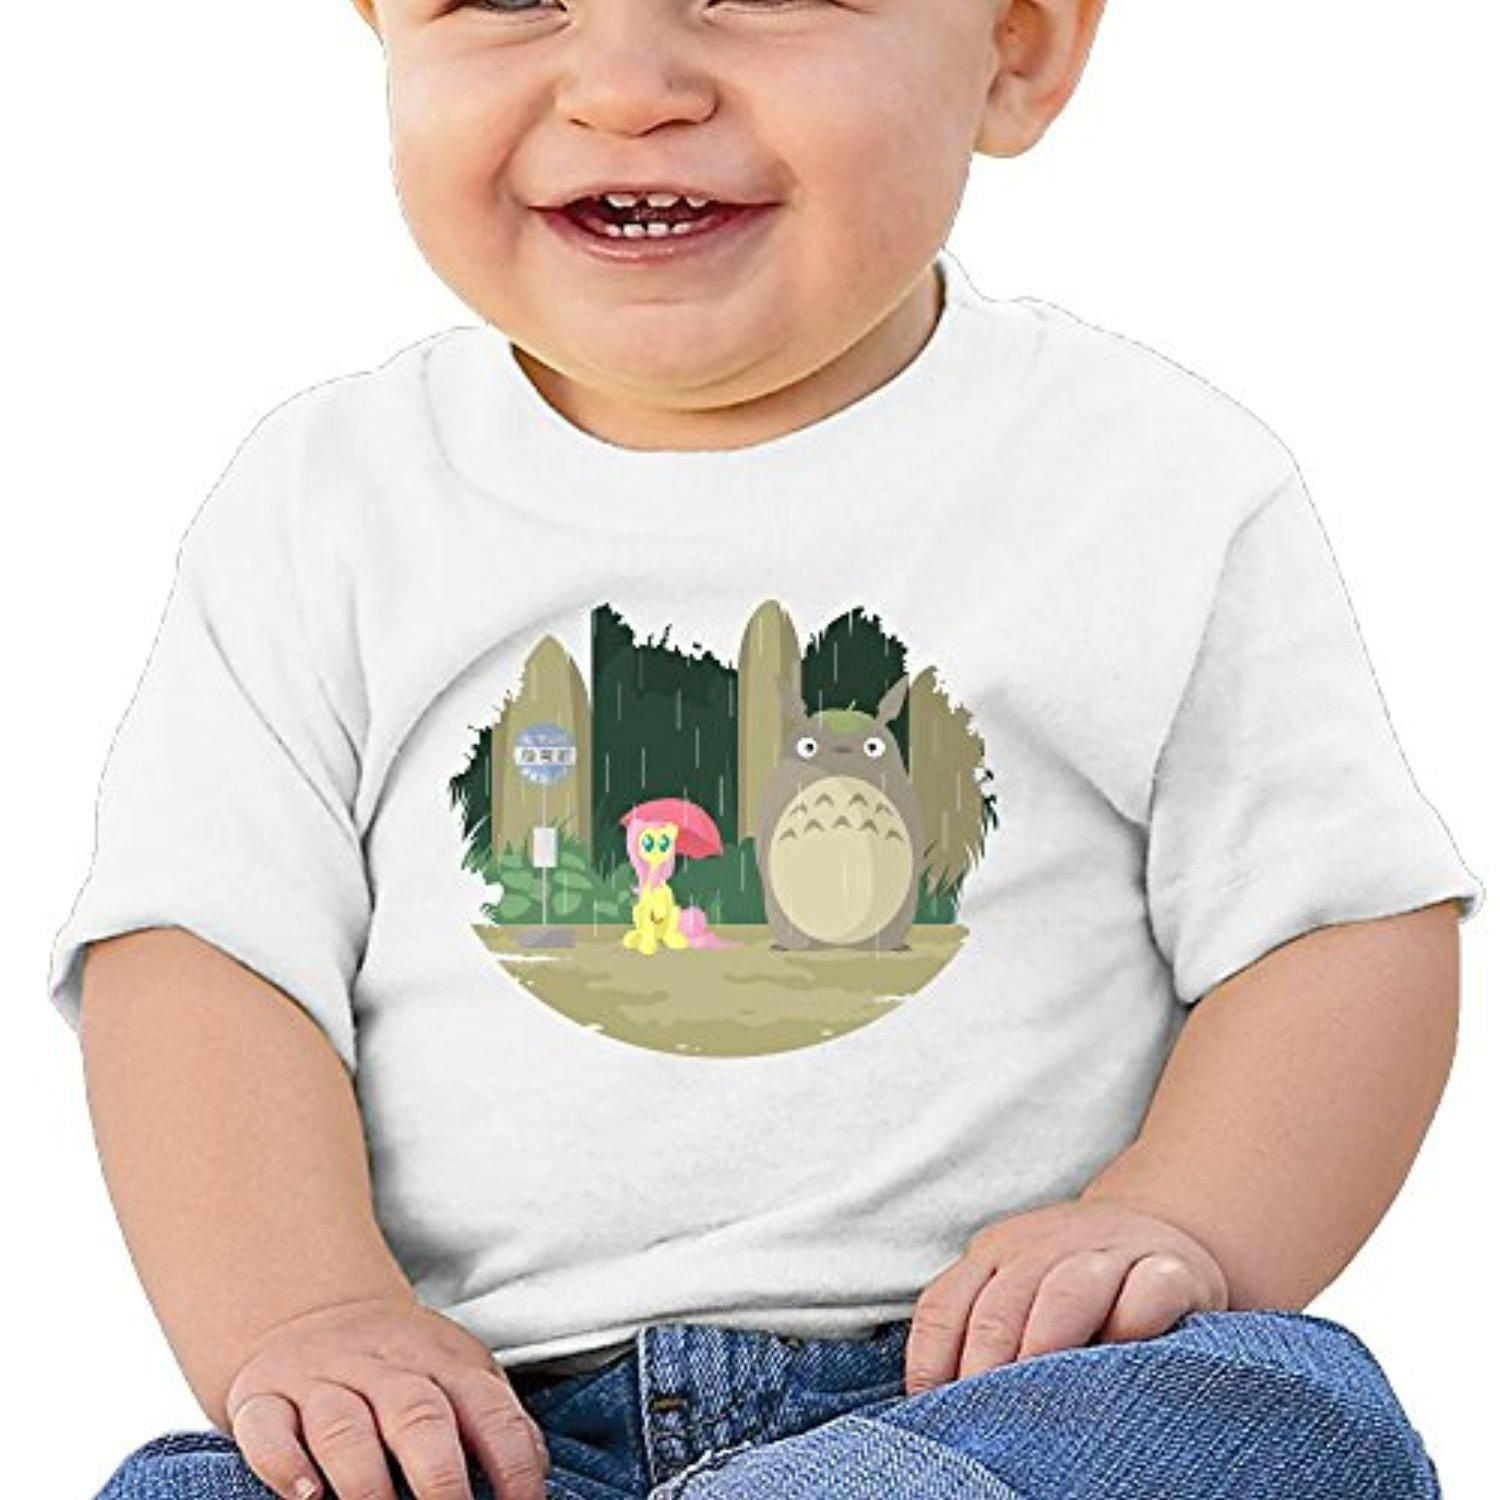 KIDDOS Infants &Toddlers Baby s Japanese Animated Fantasy Tees